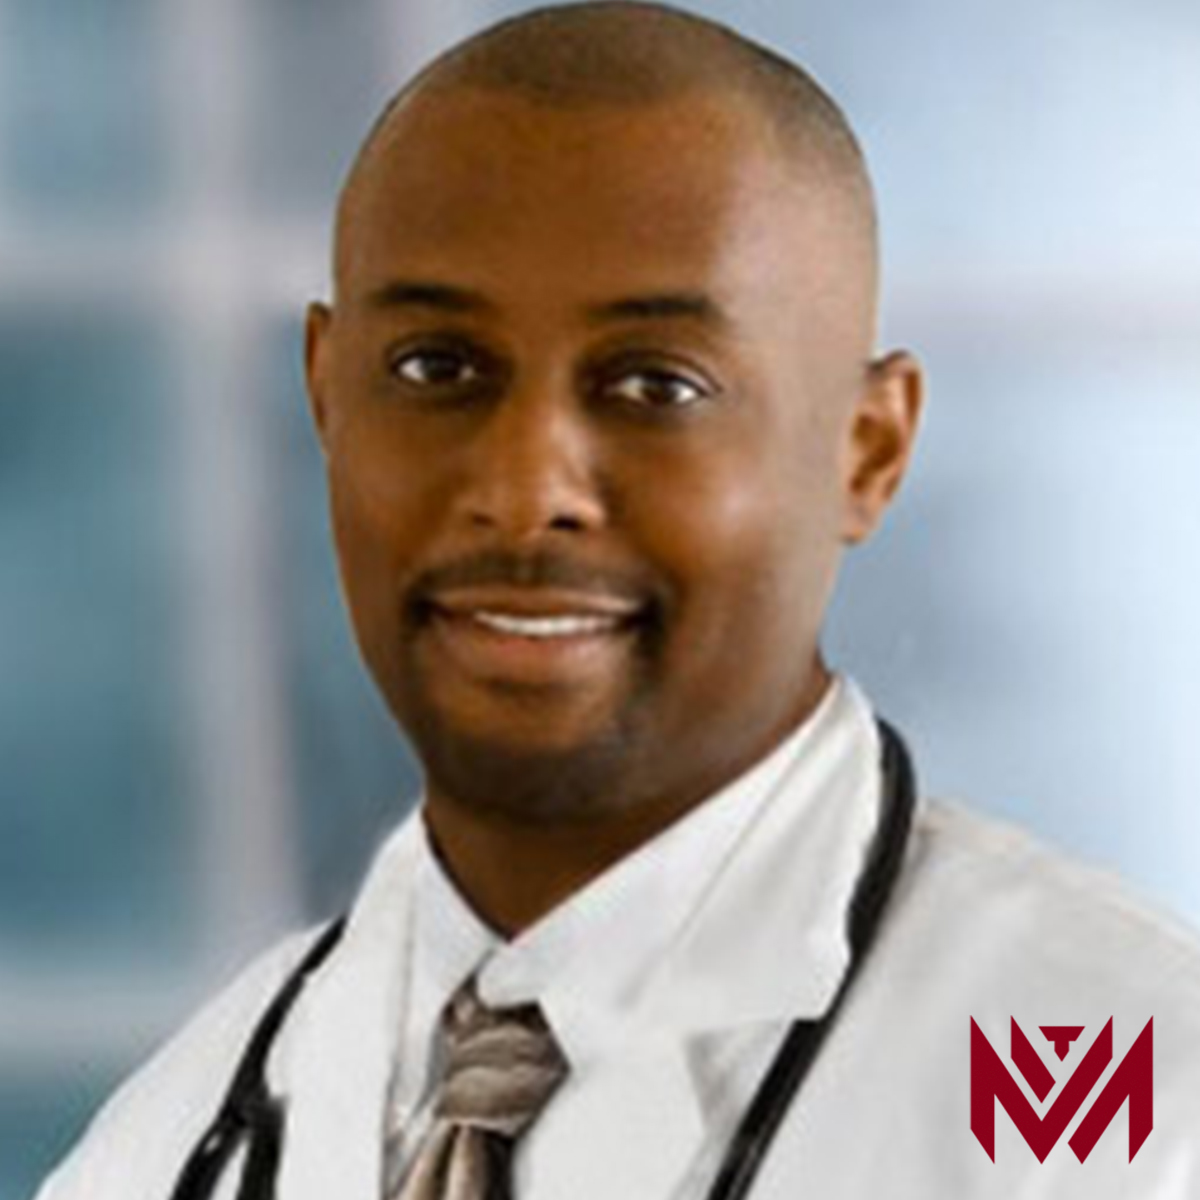 Dr. Eric Griggs